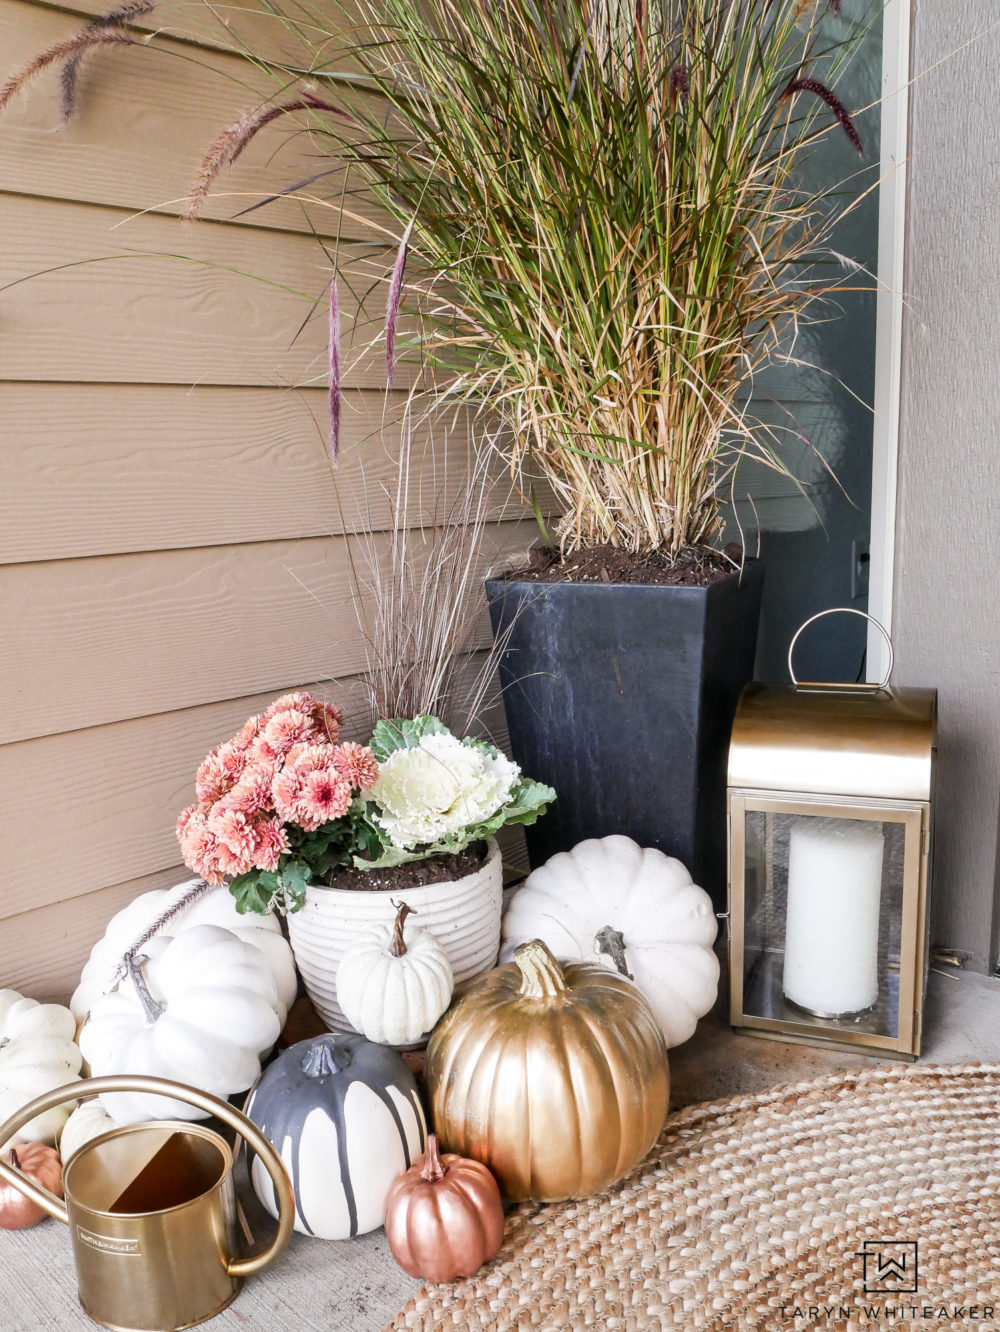 Super cute fall porch decorations with these rose gold pumpkins mixed with white!